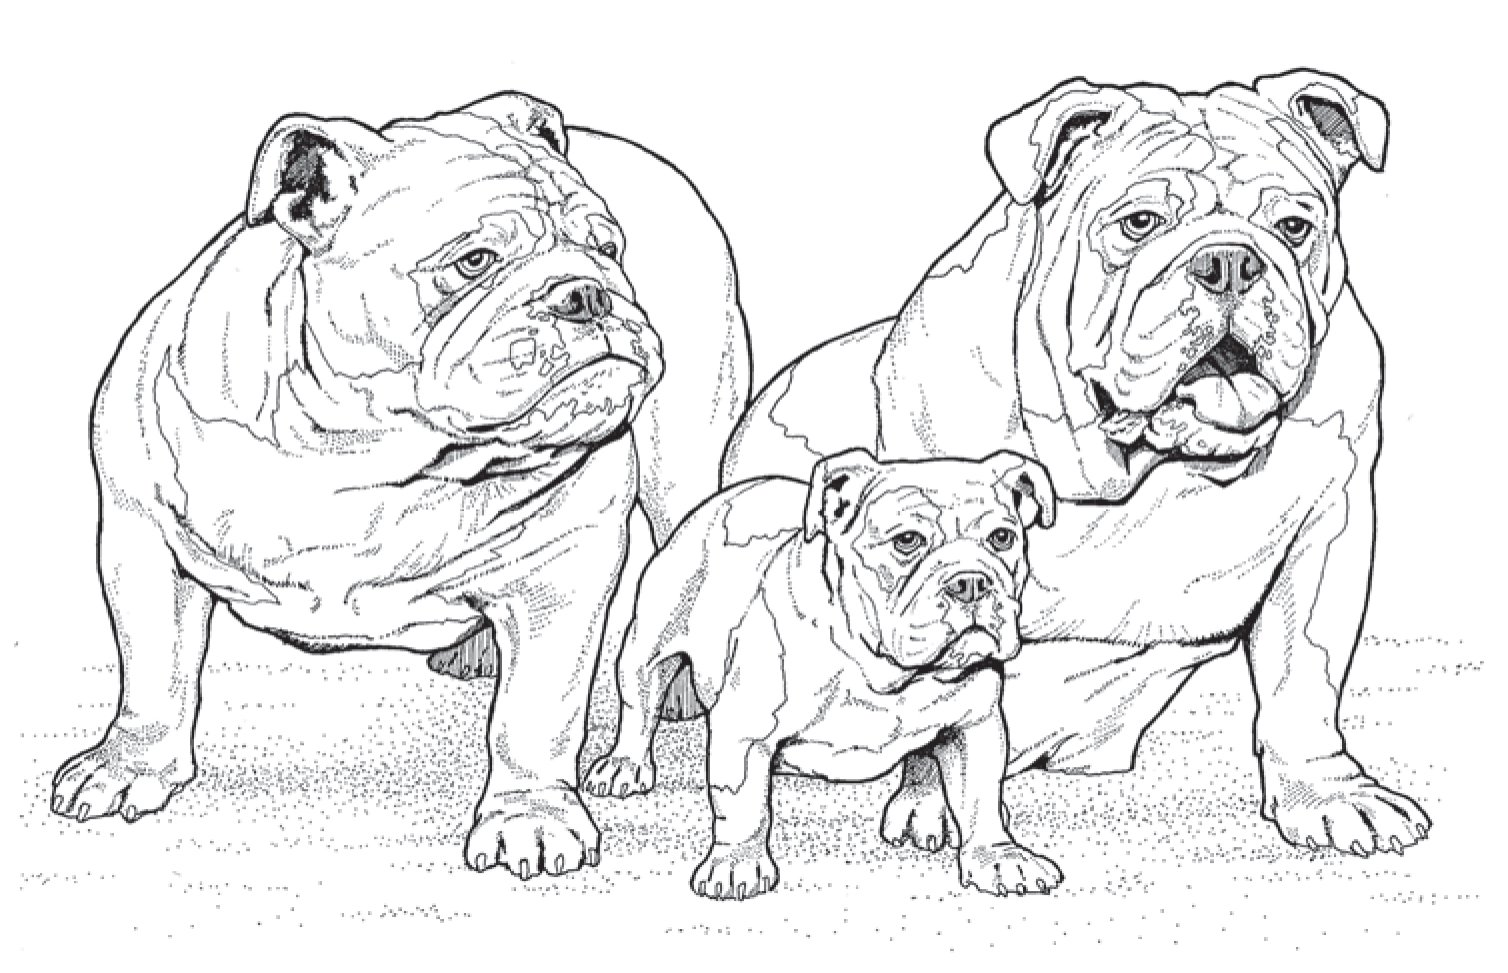 10 new adult coloring books for dog lovers to help get your chill on rovercom - Color Books